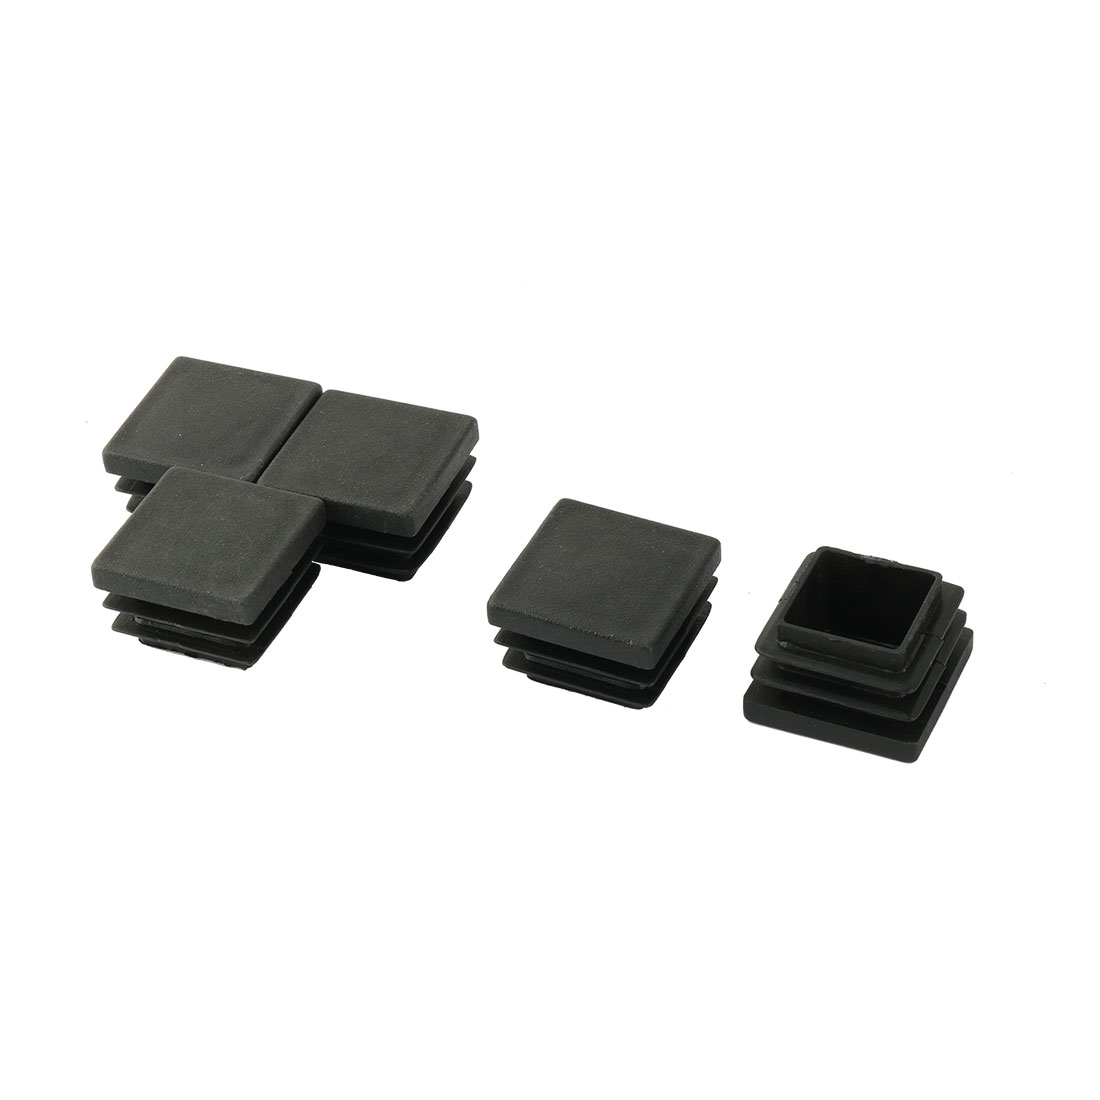 5pcs Black Plastic Square Tubing Tube Insert Caps for 3cmx3cm Table Chair Leg